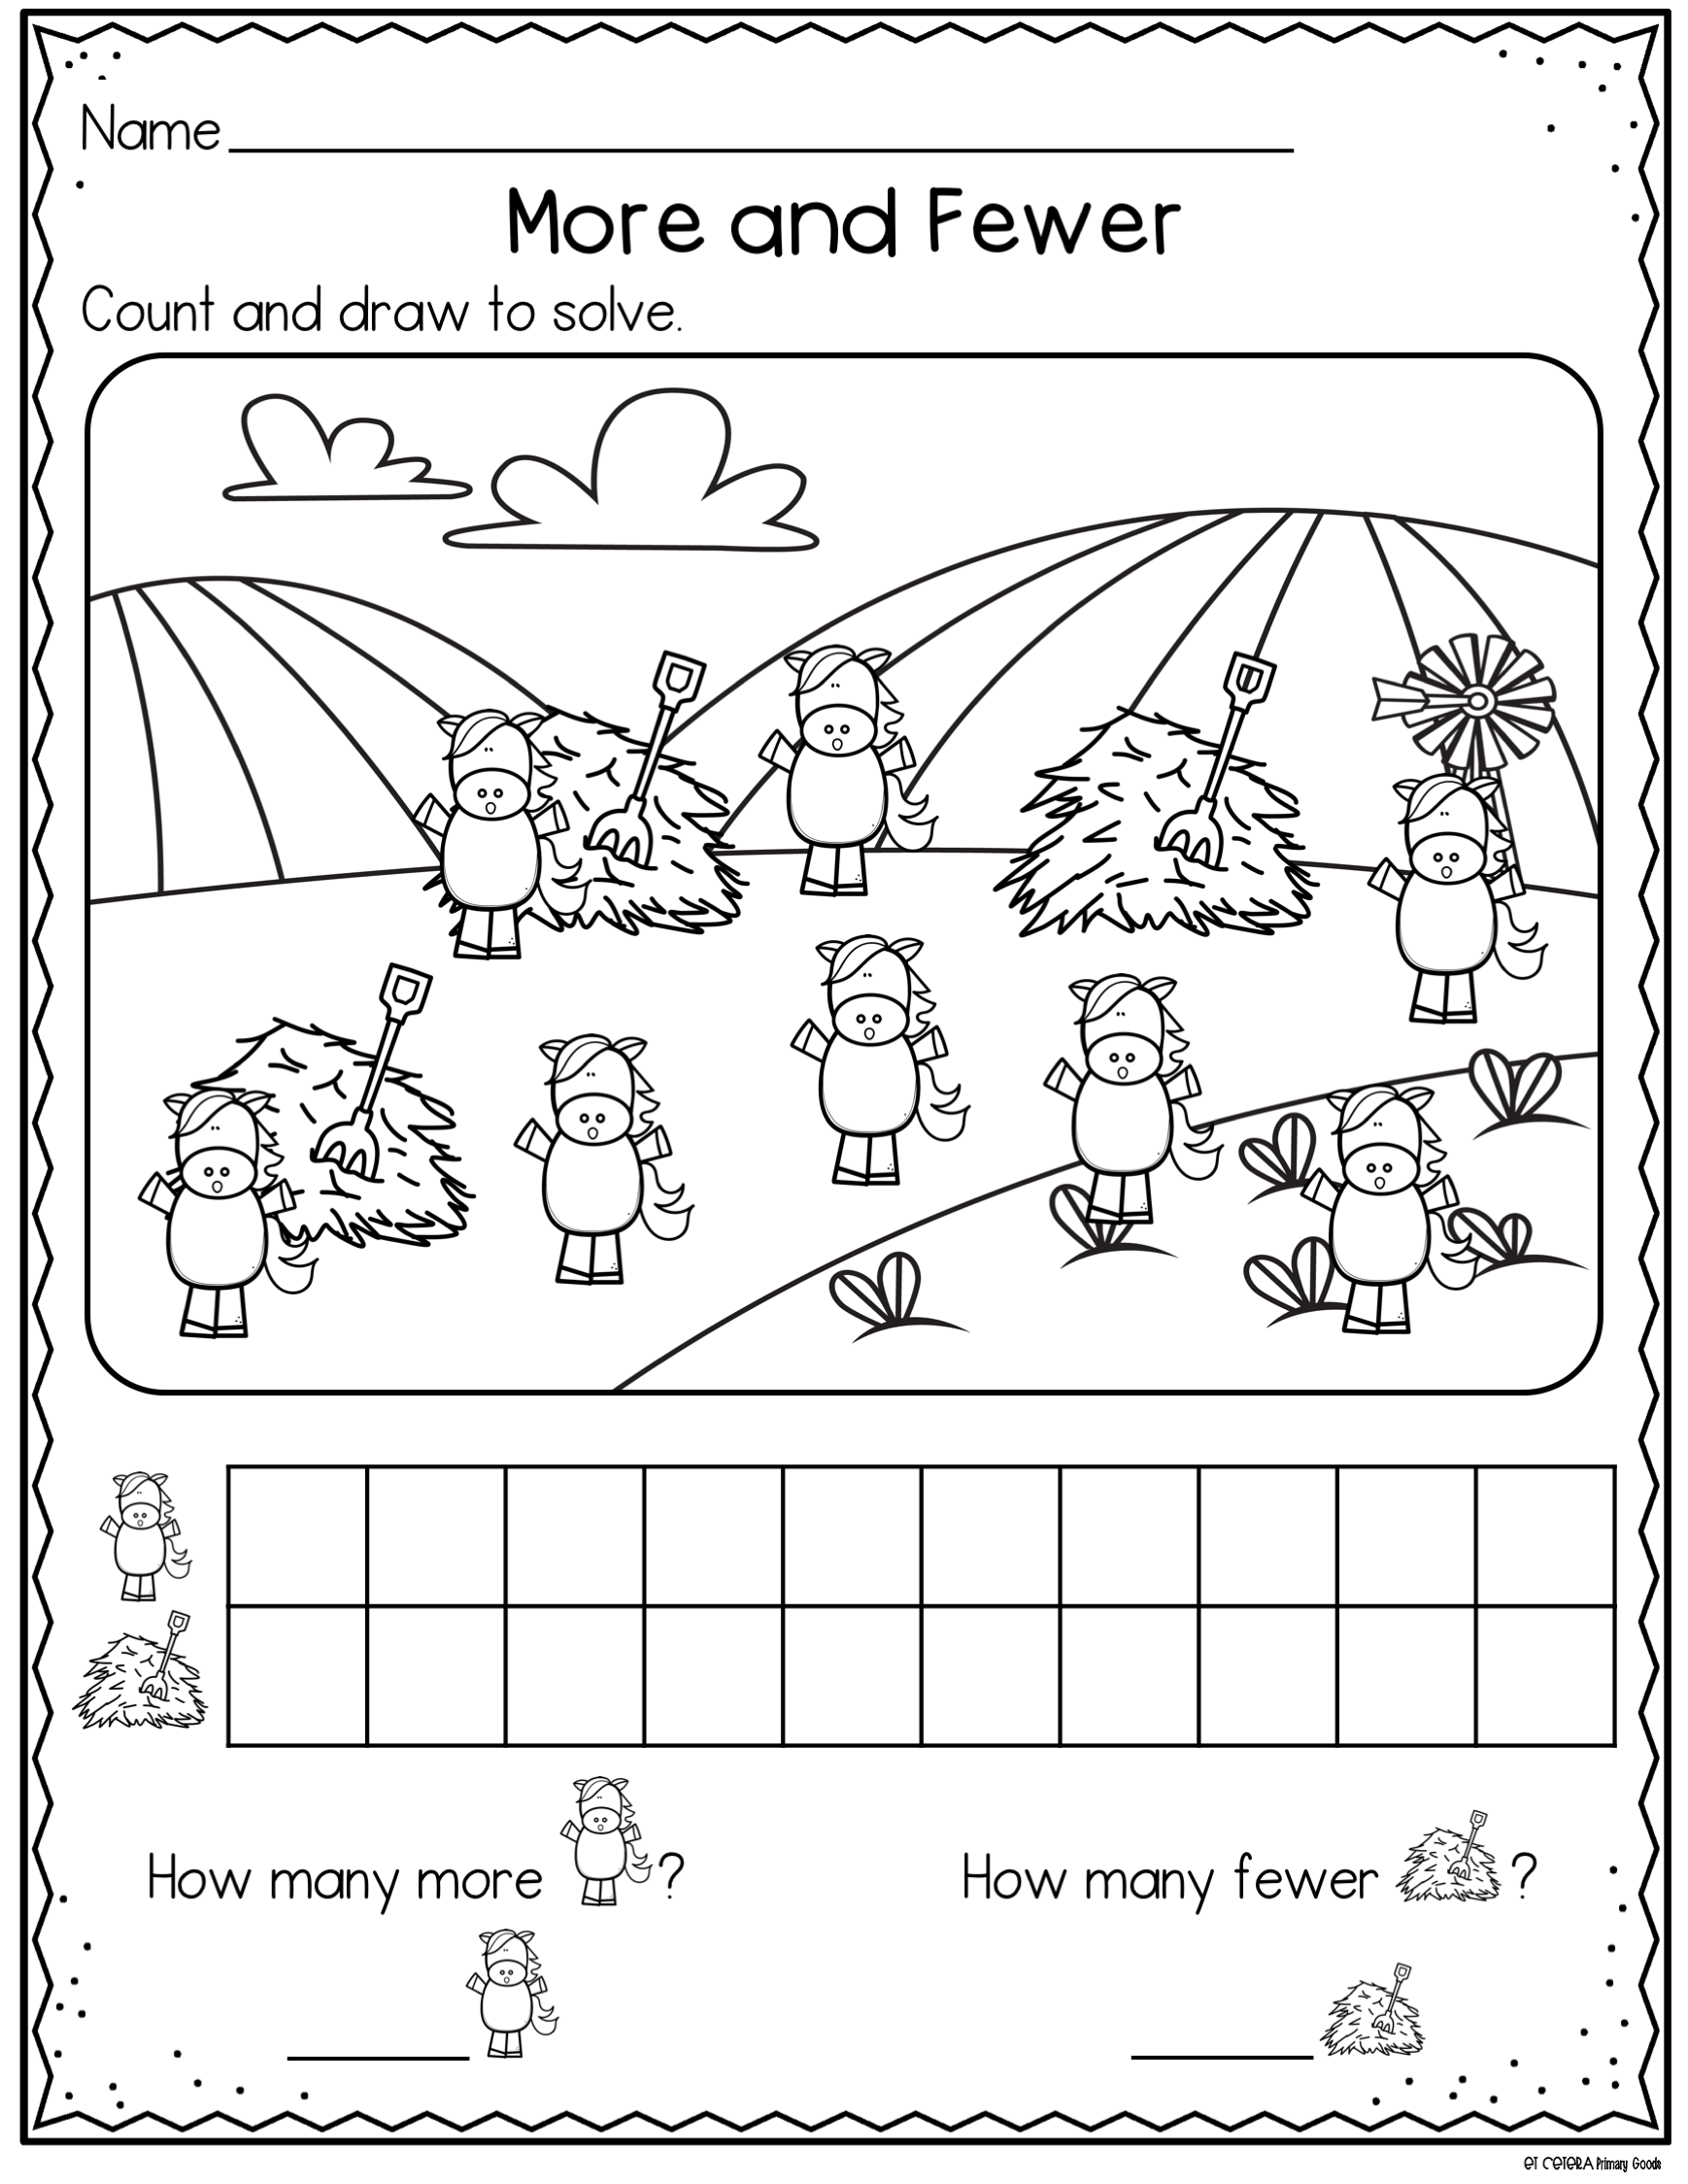 hight resolution of More and Fewer Comparing Sets   Kindergarten math worksheets